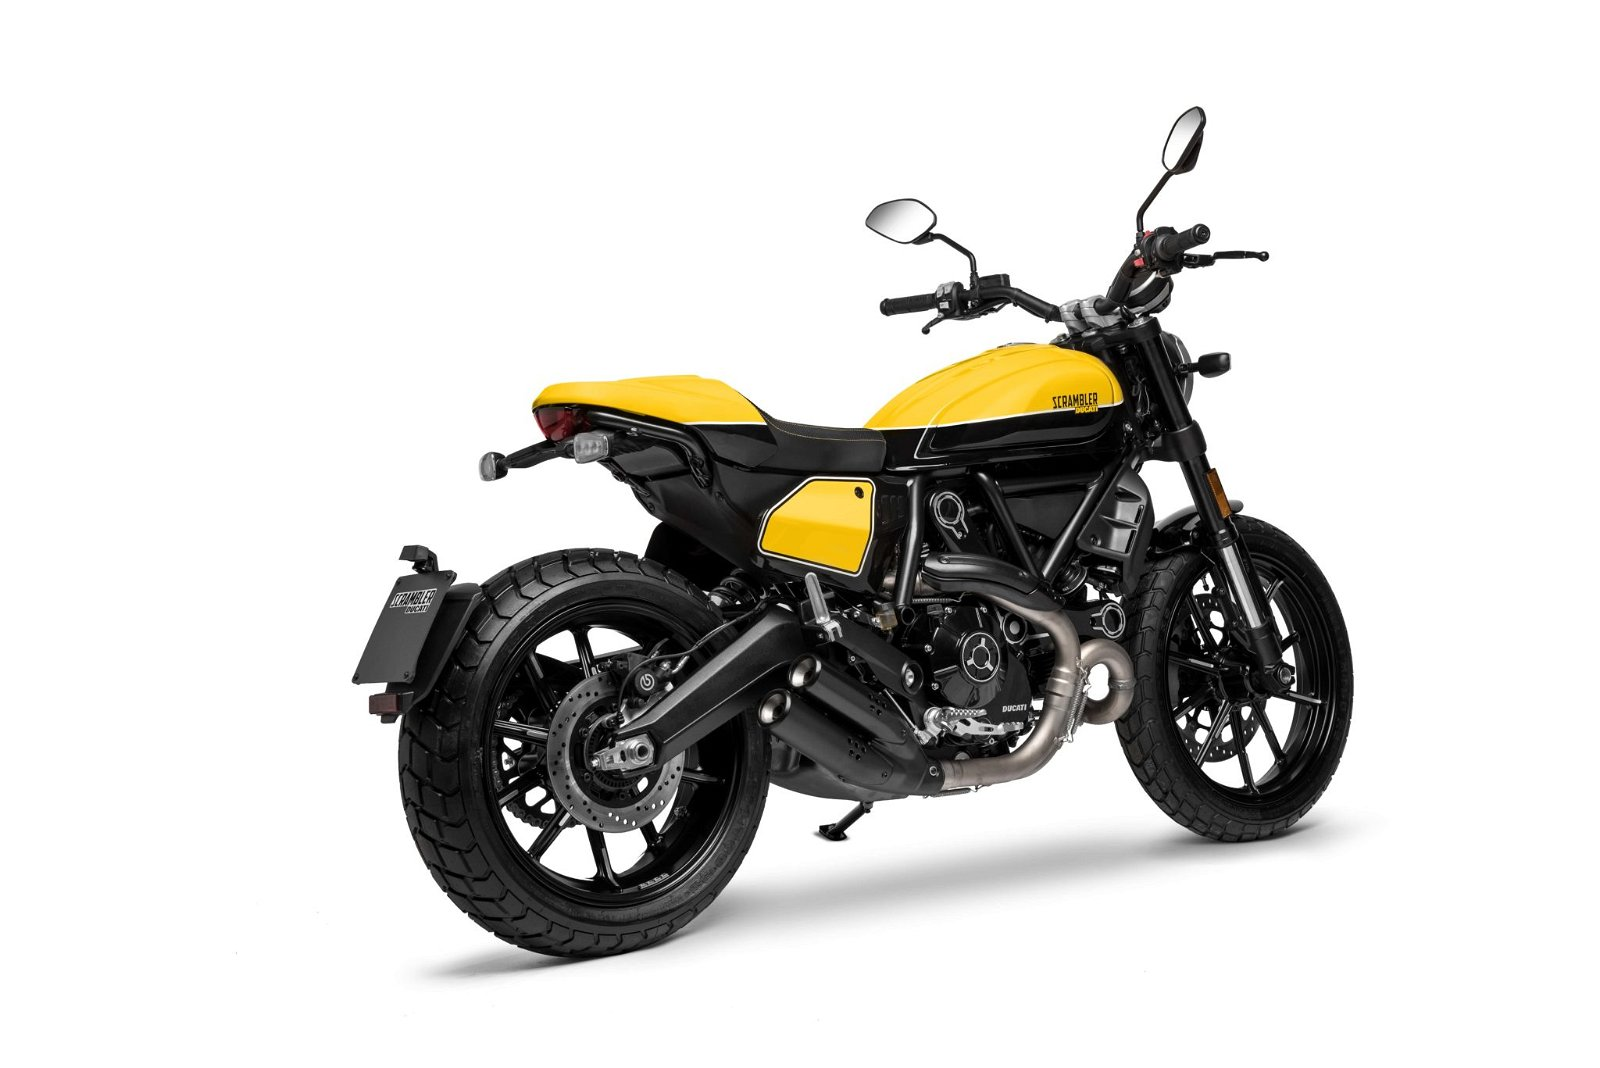 Ducati Scrambler Full Throttle side view